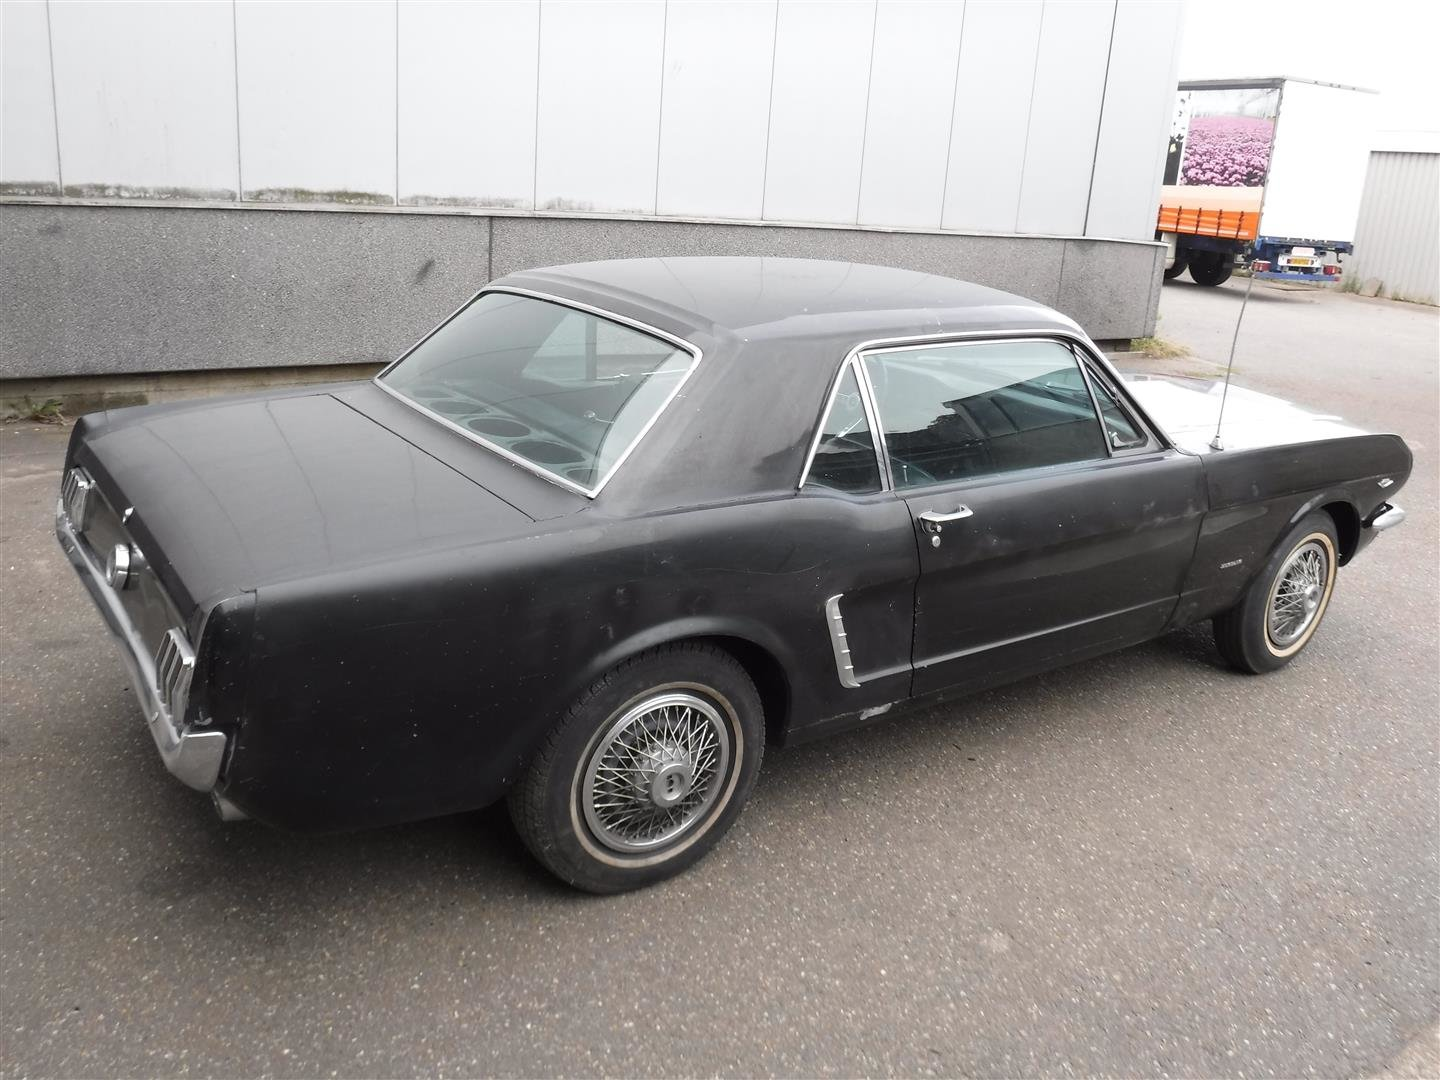 1965 Ford Mustang '65 For Sale (picture 3 of 6)